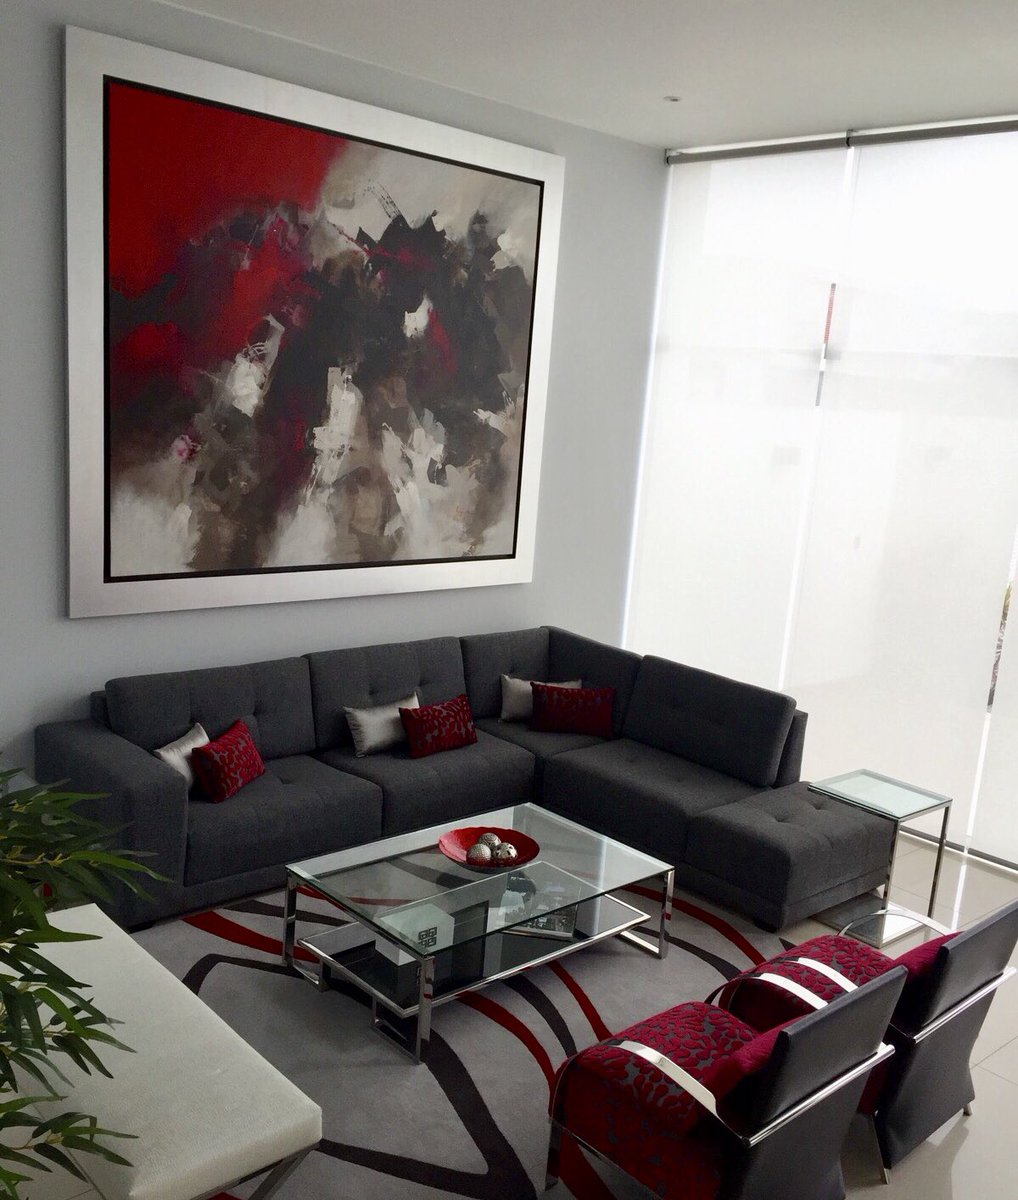 Epg studio on twitter dise o interior decoraci n de - Salon gris y rojo ...